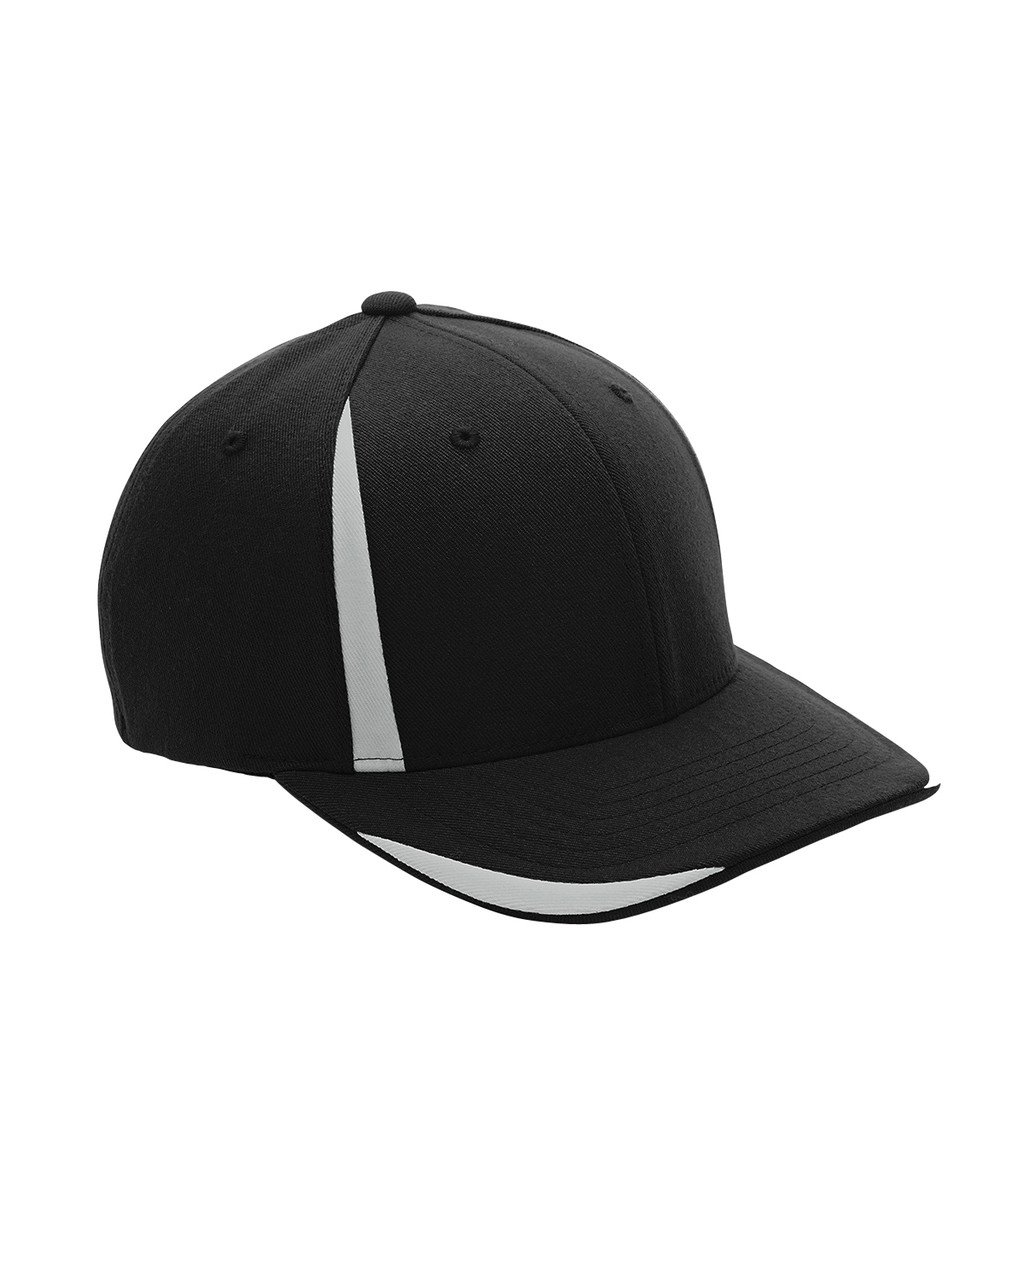 Black/Sport Silver - ATB102 Flexfit for Team 365 Pro-Formance Front Sweep Cap